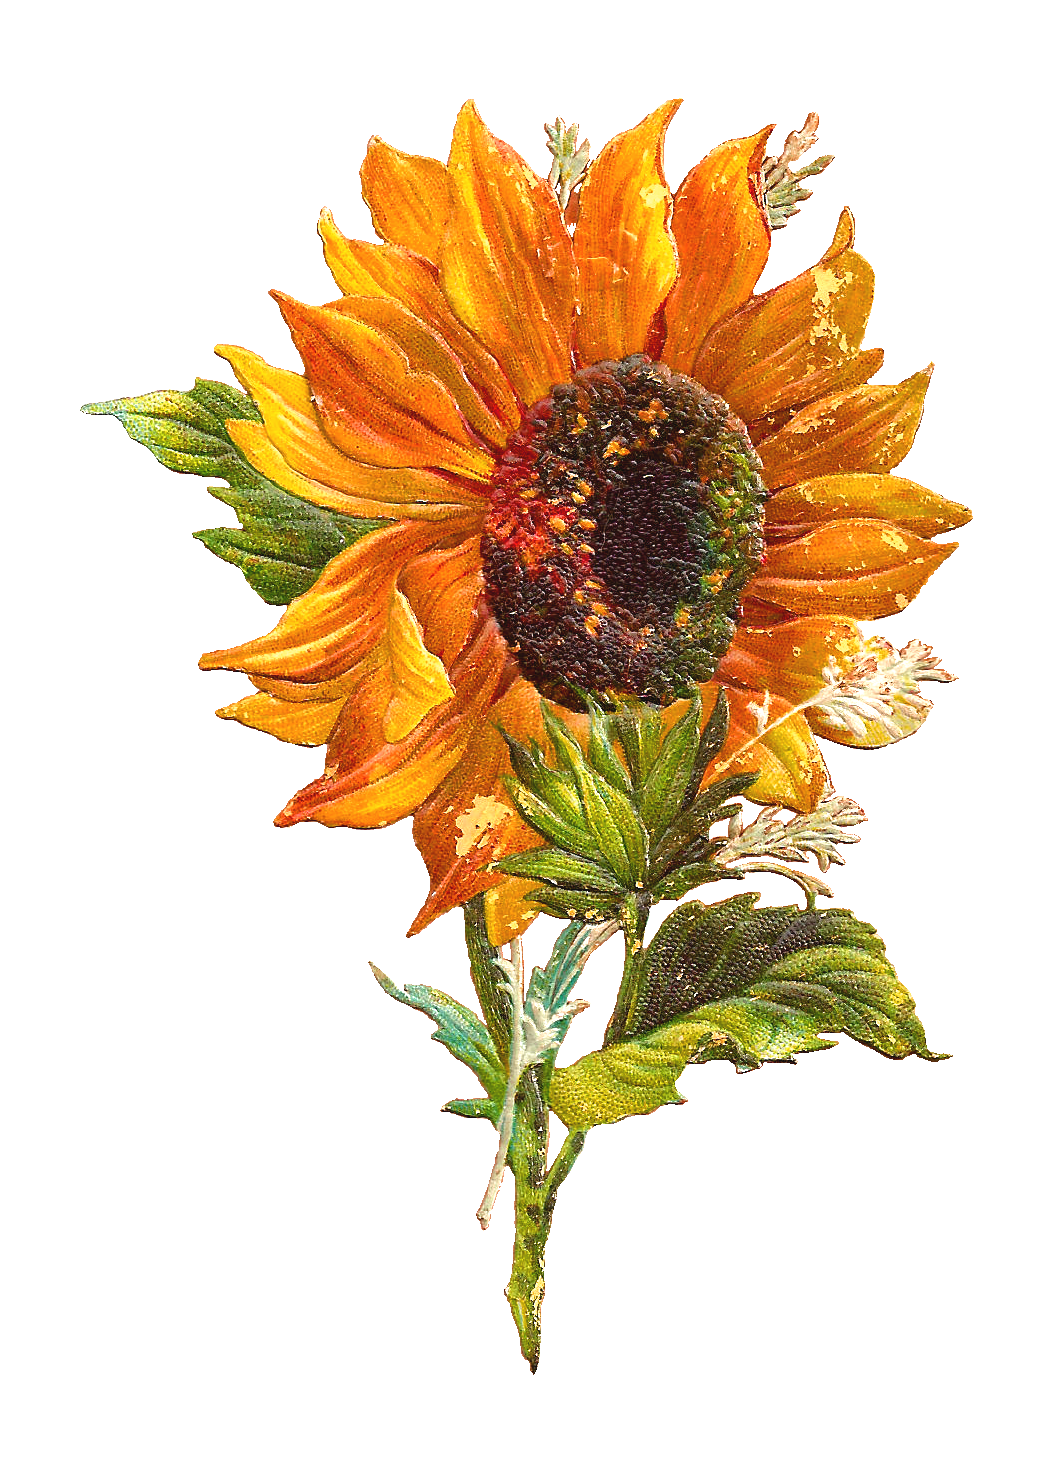 Antique Images: Free Flower Graphic: Sunflower Clip Art of 2 Victorian ...